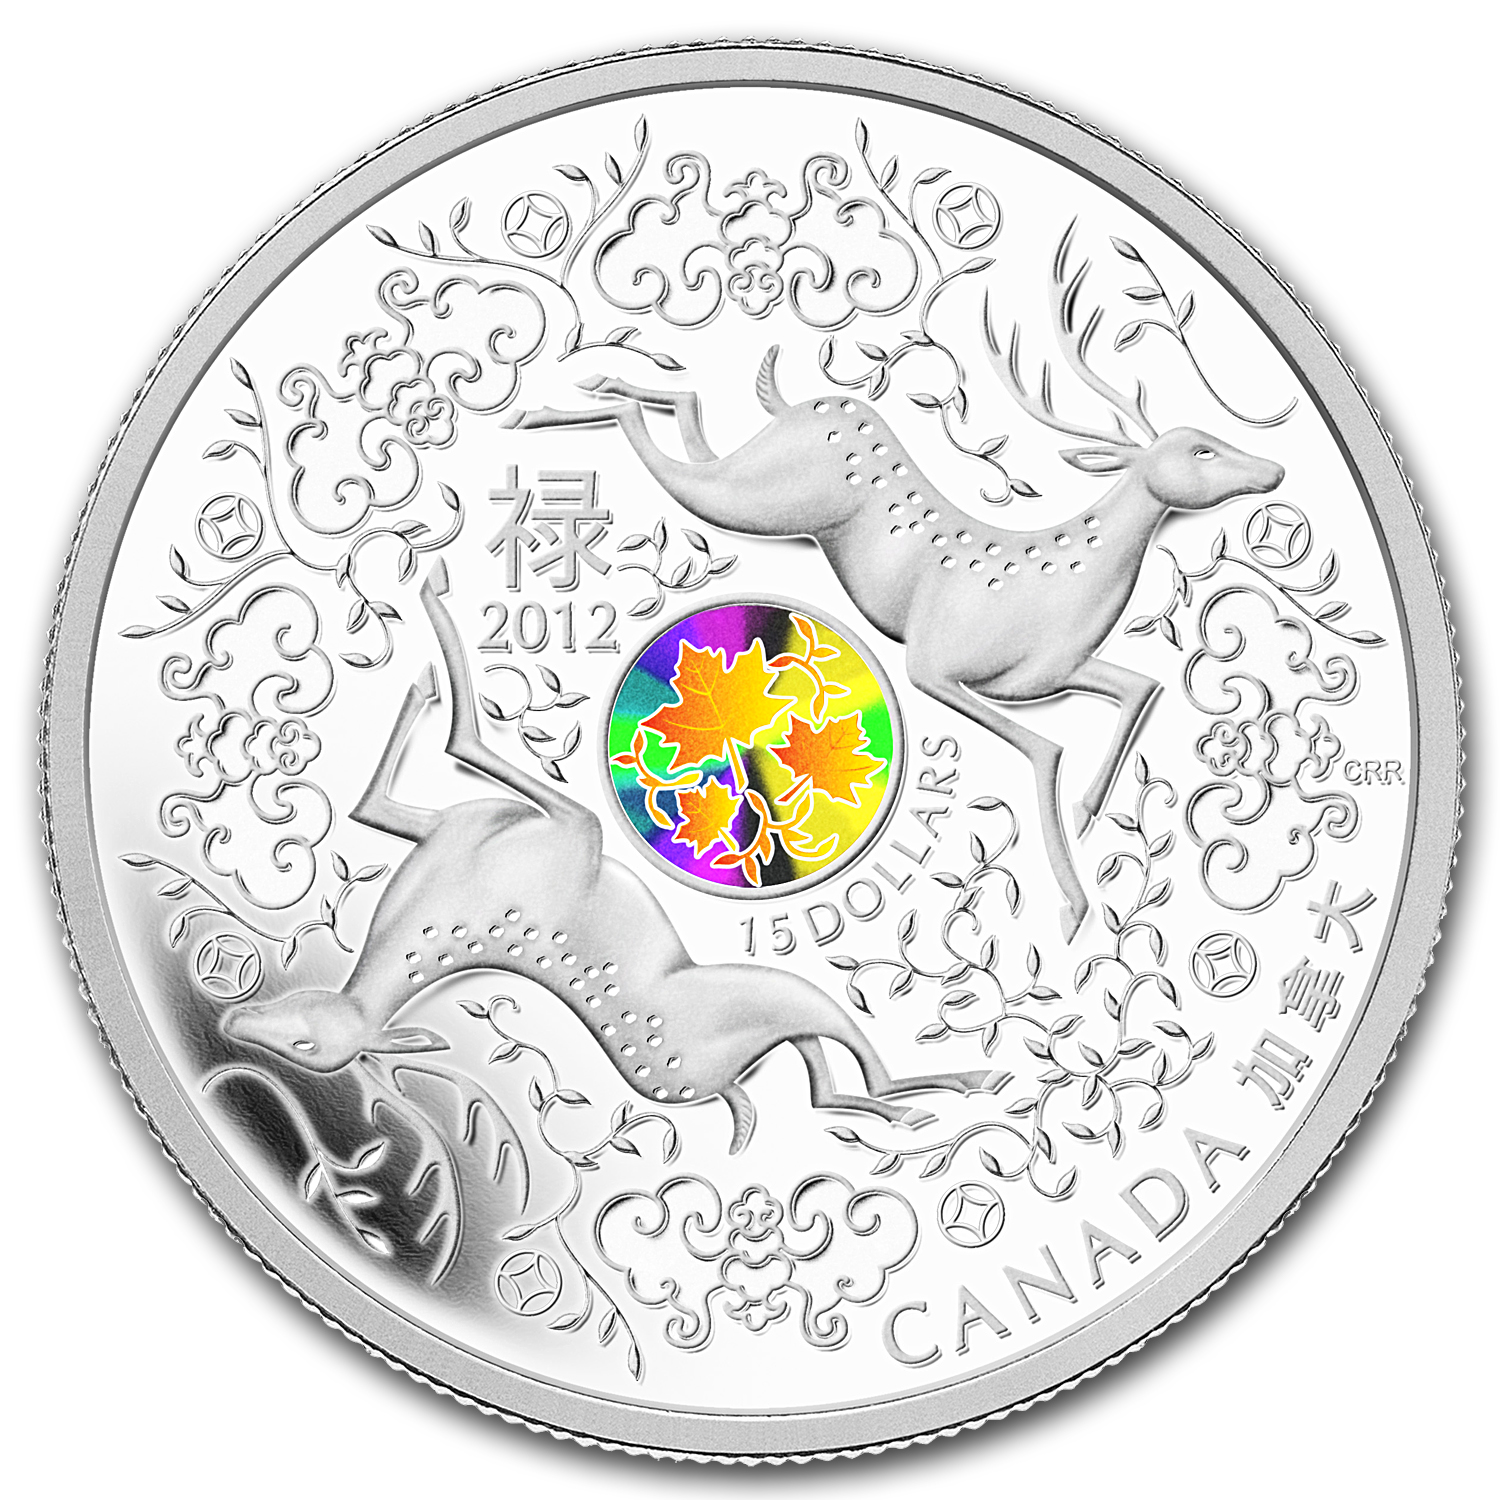 2012 Canada 1 oz Silver $15 Maple of Good Fortune (w/Hologram)